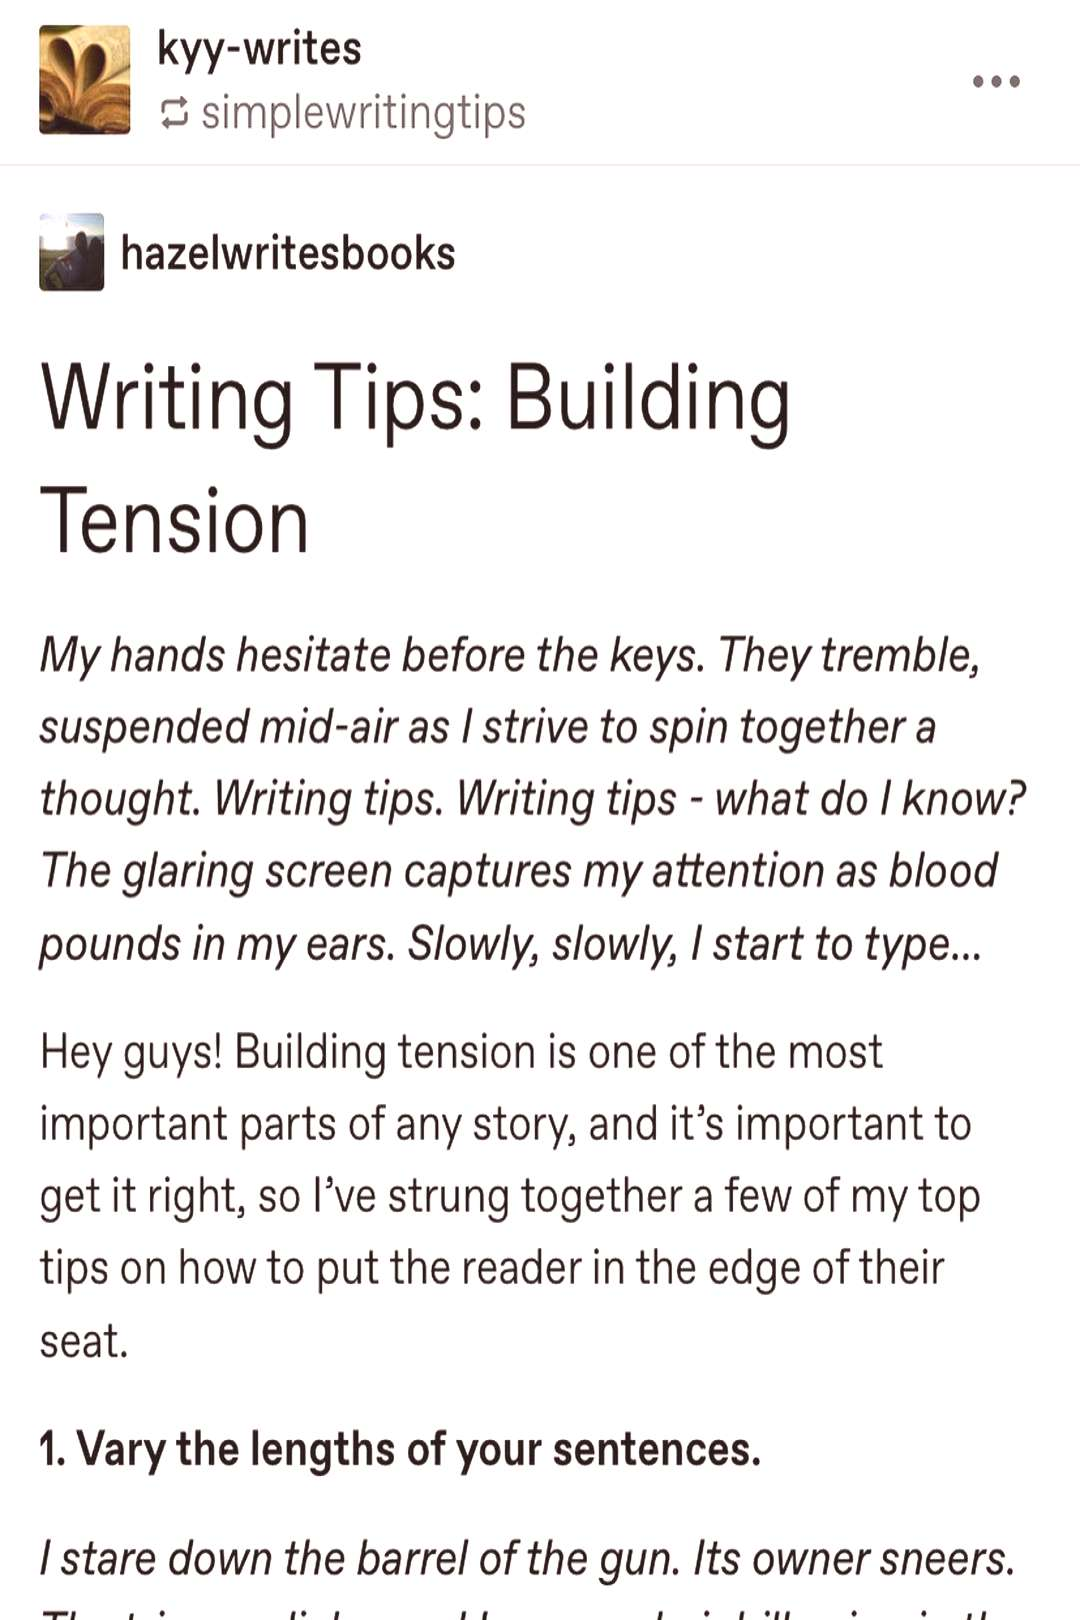 Suspense is what keeps readers wanting more. -- Tags #write #wri